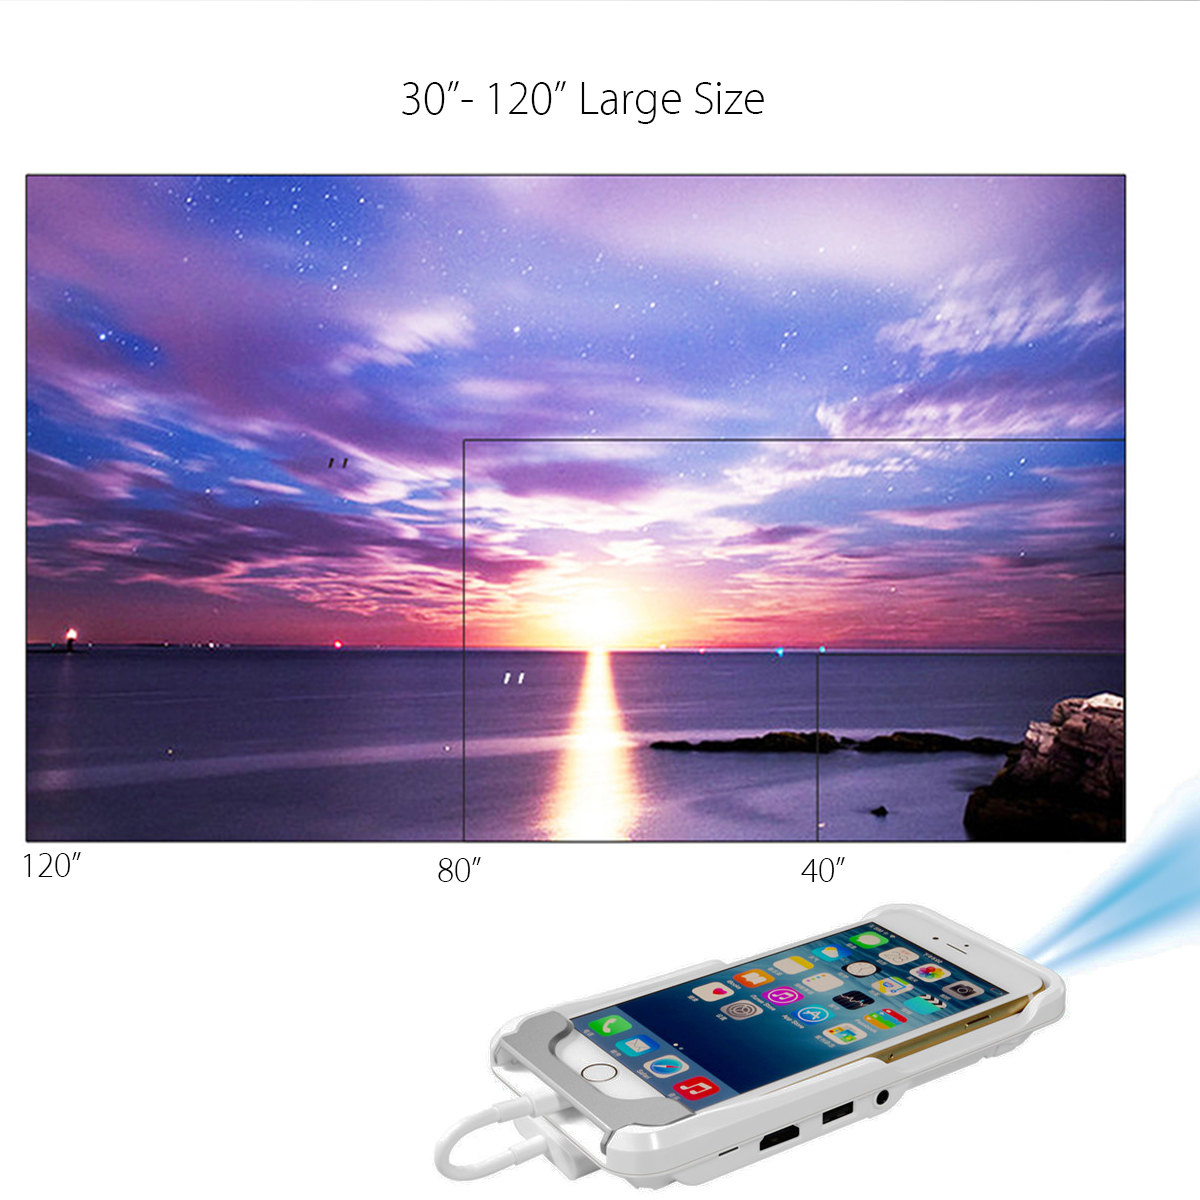 Bakeey G6 Mini DLP LED Projector Mobile Home Cinema Theater for iPhone X 8 Plus 7